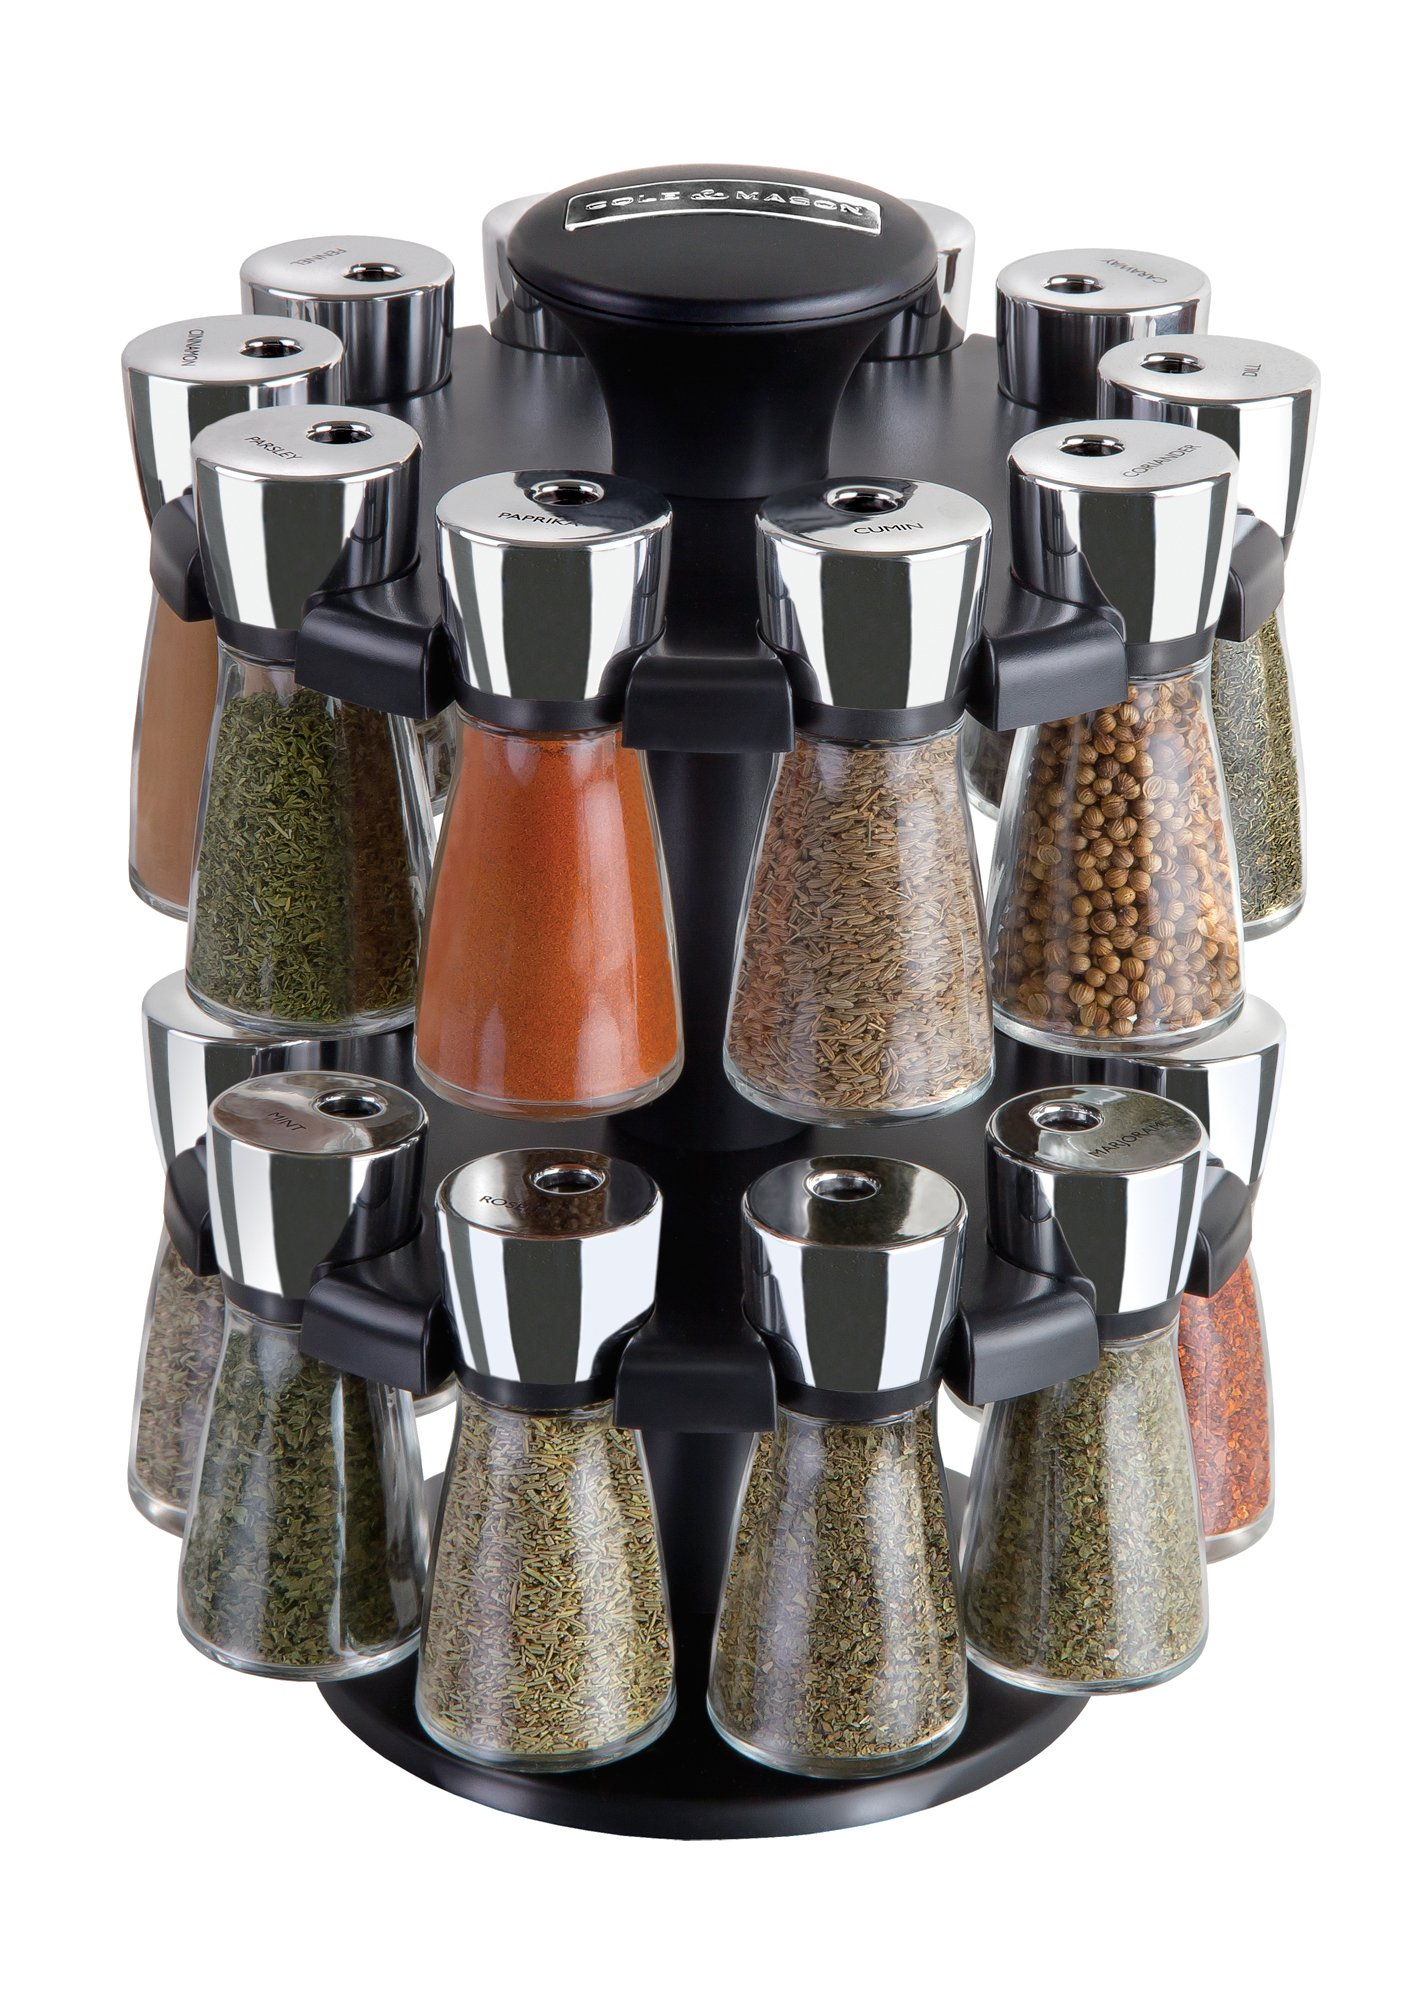 Cole & Mason Herb and Spice Rack with Spices - Revolving Countertop Carousel Set Includes 20 Filled Glass Jar Bottles by Cole & Mason